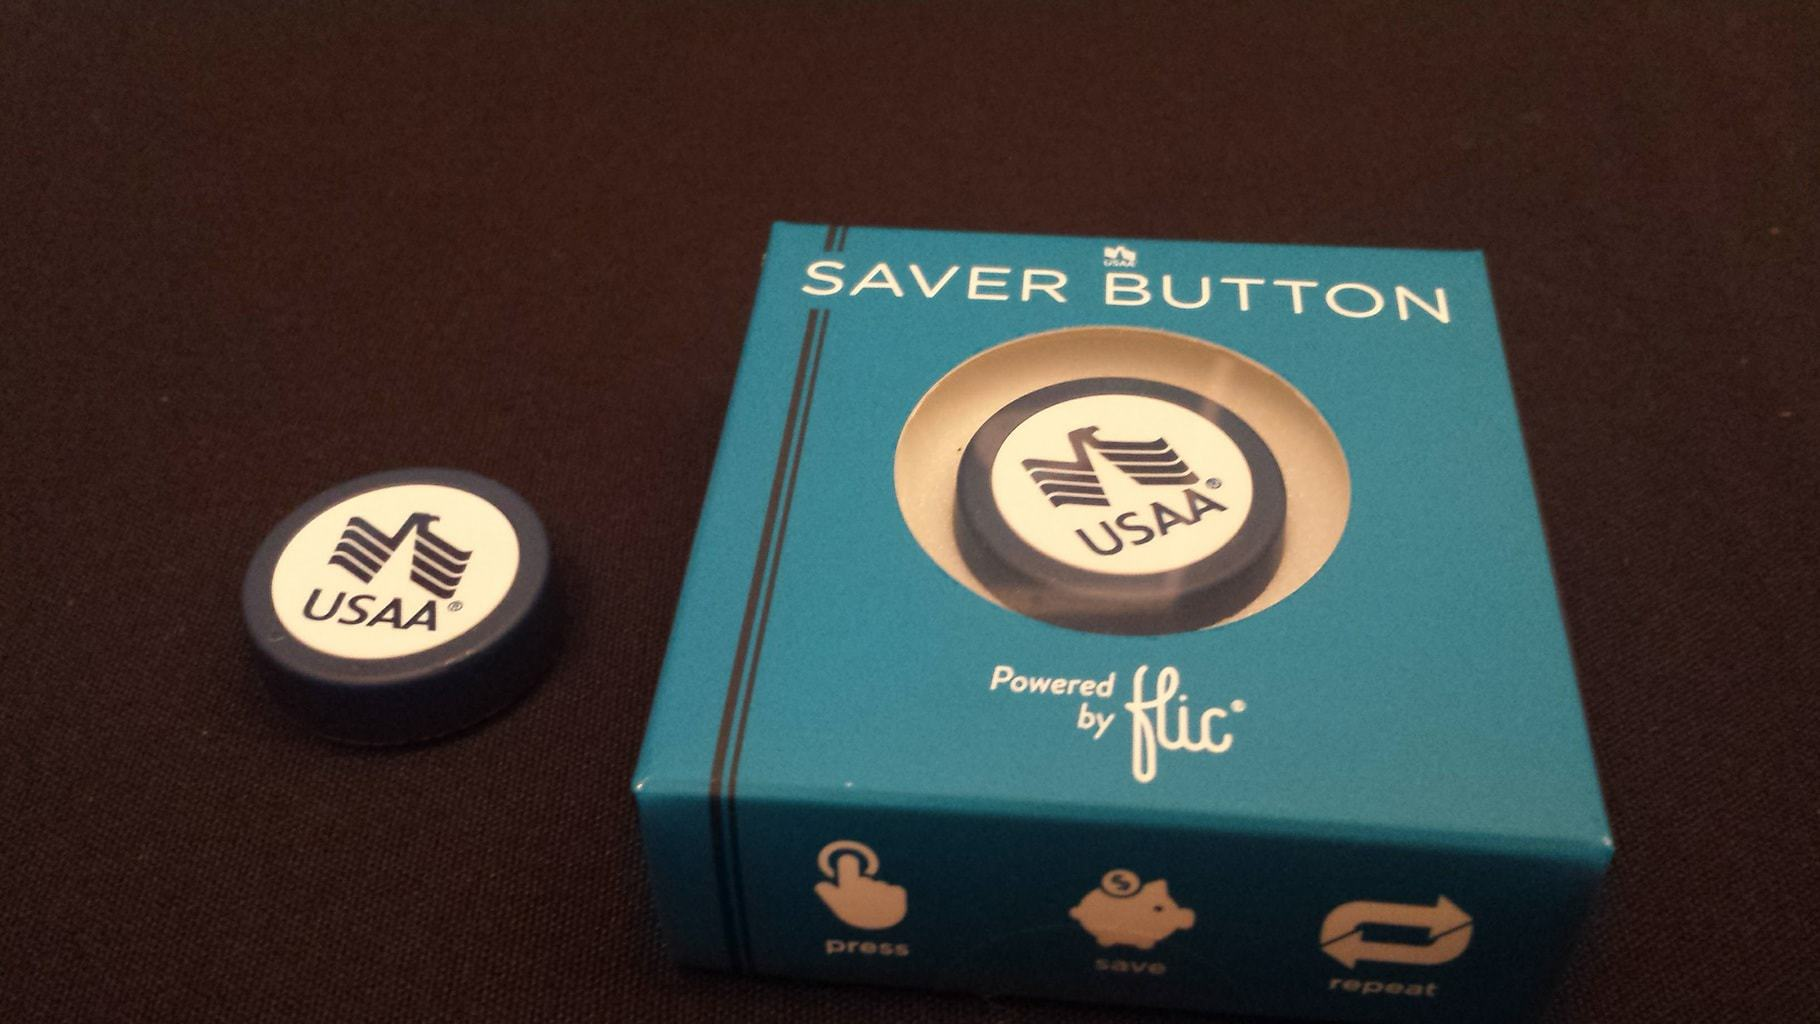 Press Button, Save Money? Maybe, With USAA